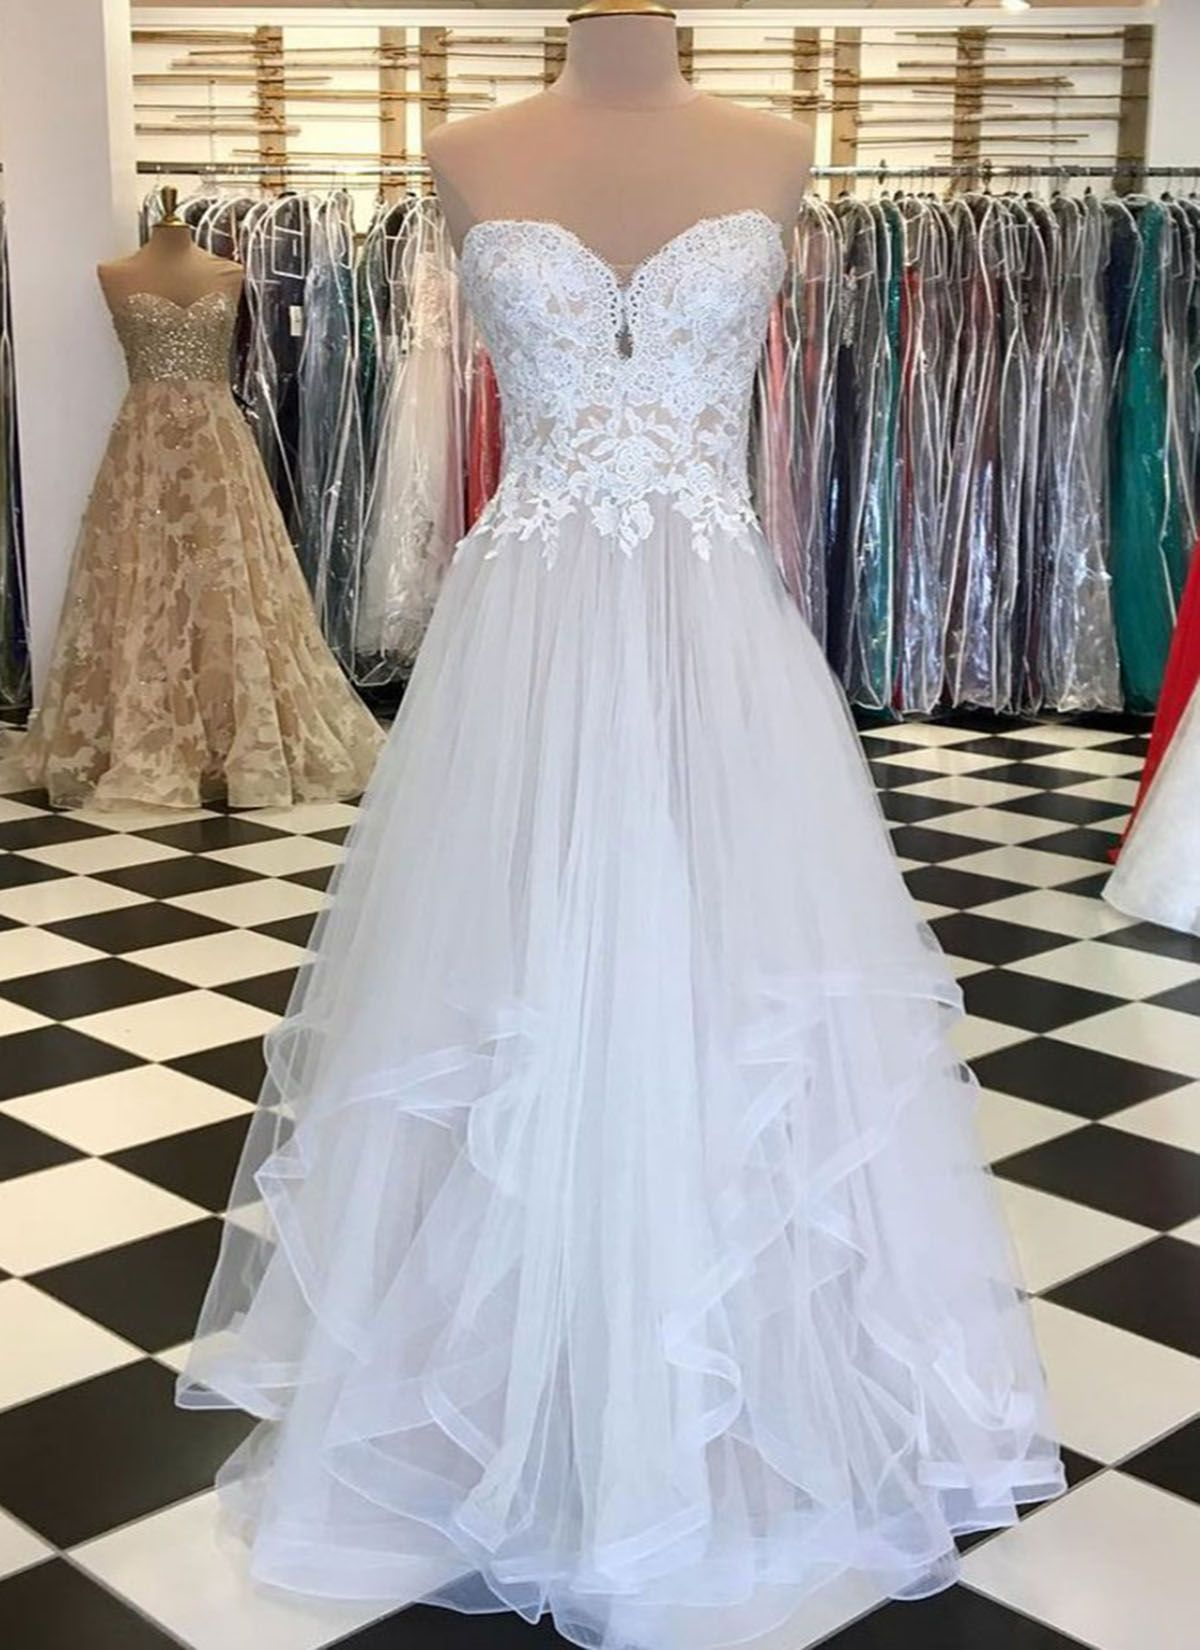 Sweetheart neck white tulle long ruffles prom dress with white lace